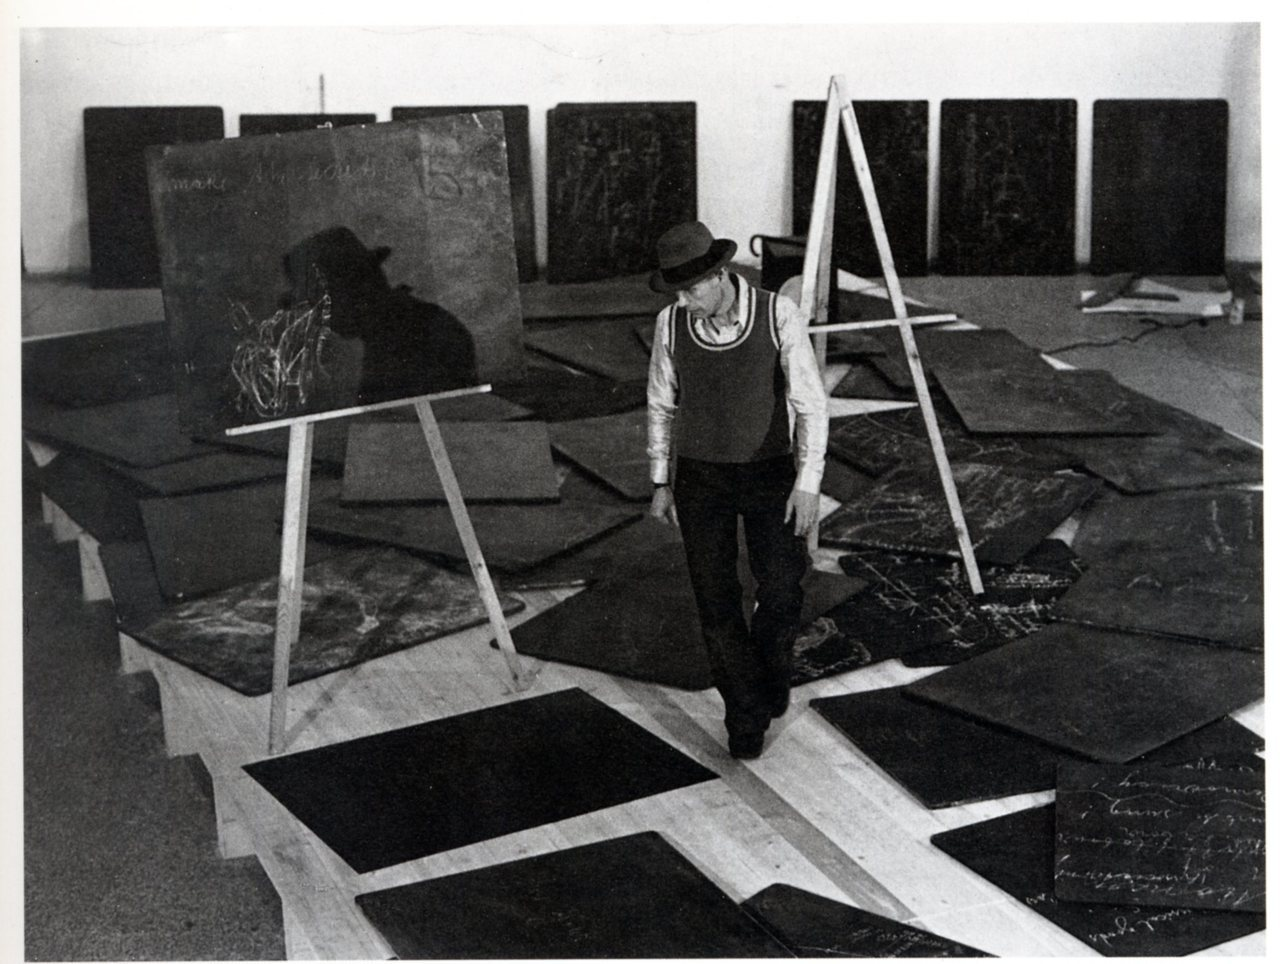 Joseph Beuys at documenta 5, 1972.